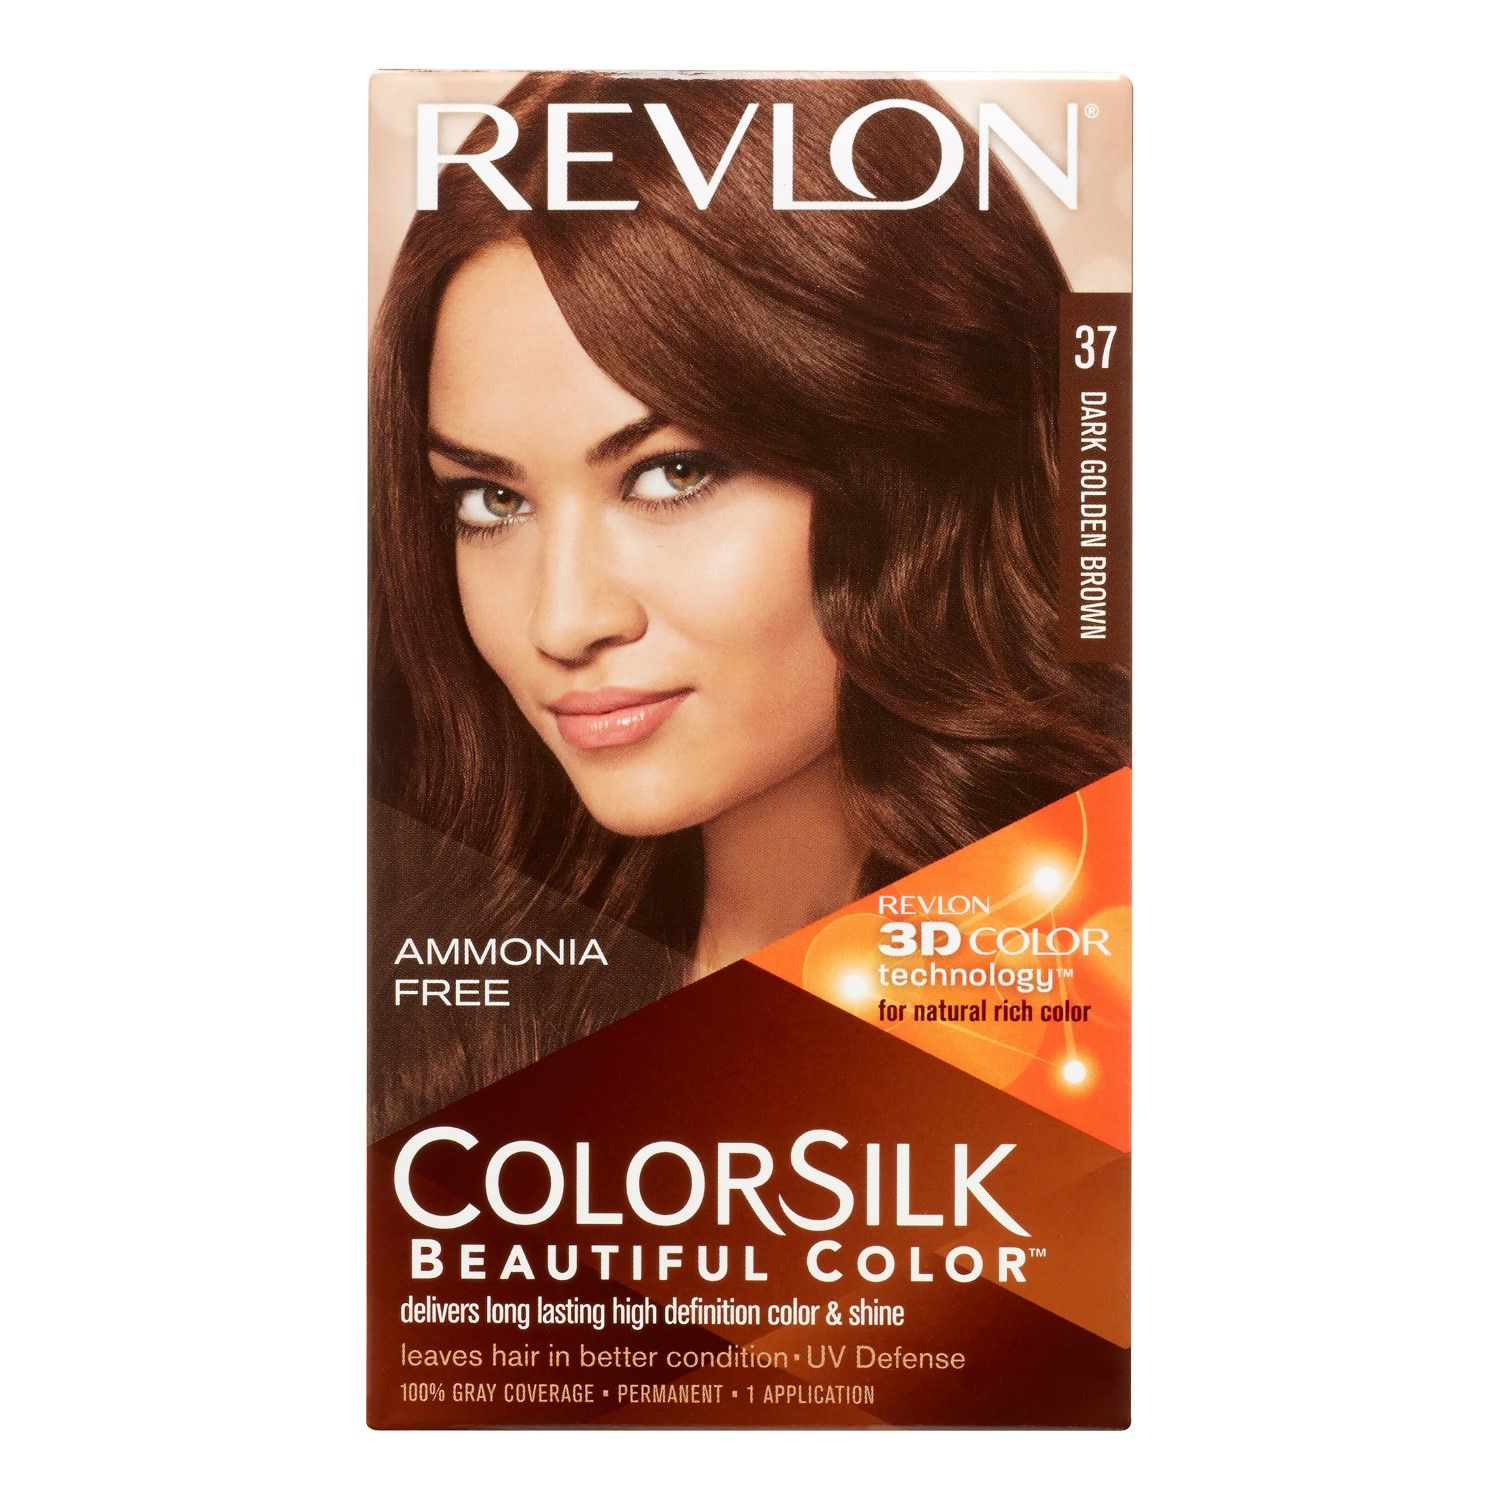 Pin By Jooana On Hair Color Ideas Pinterest Hair Coloring